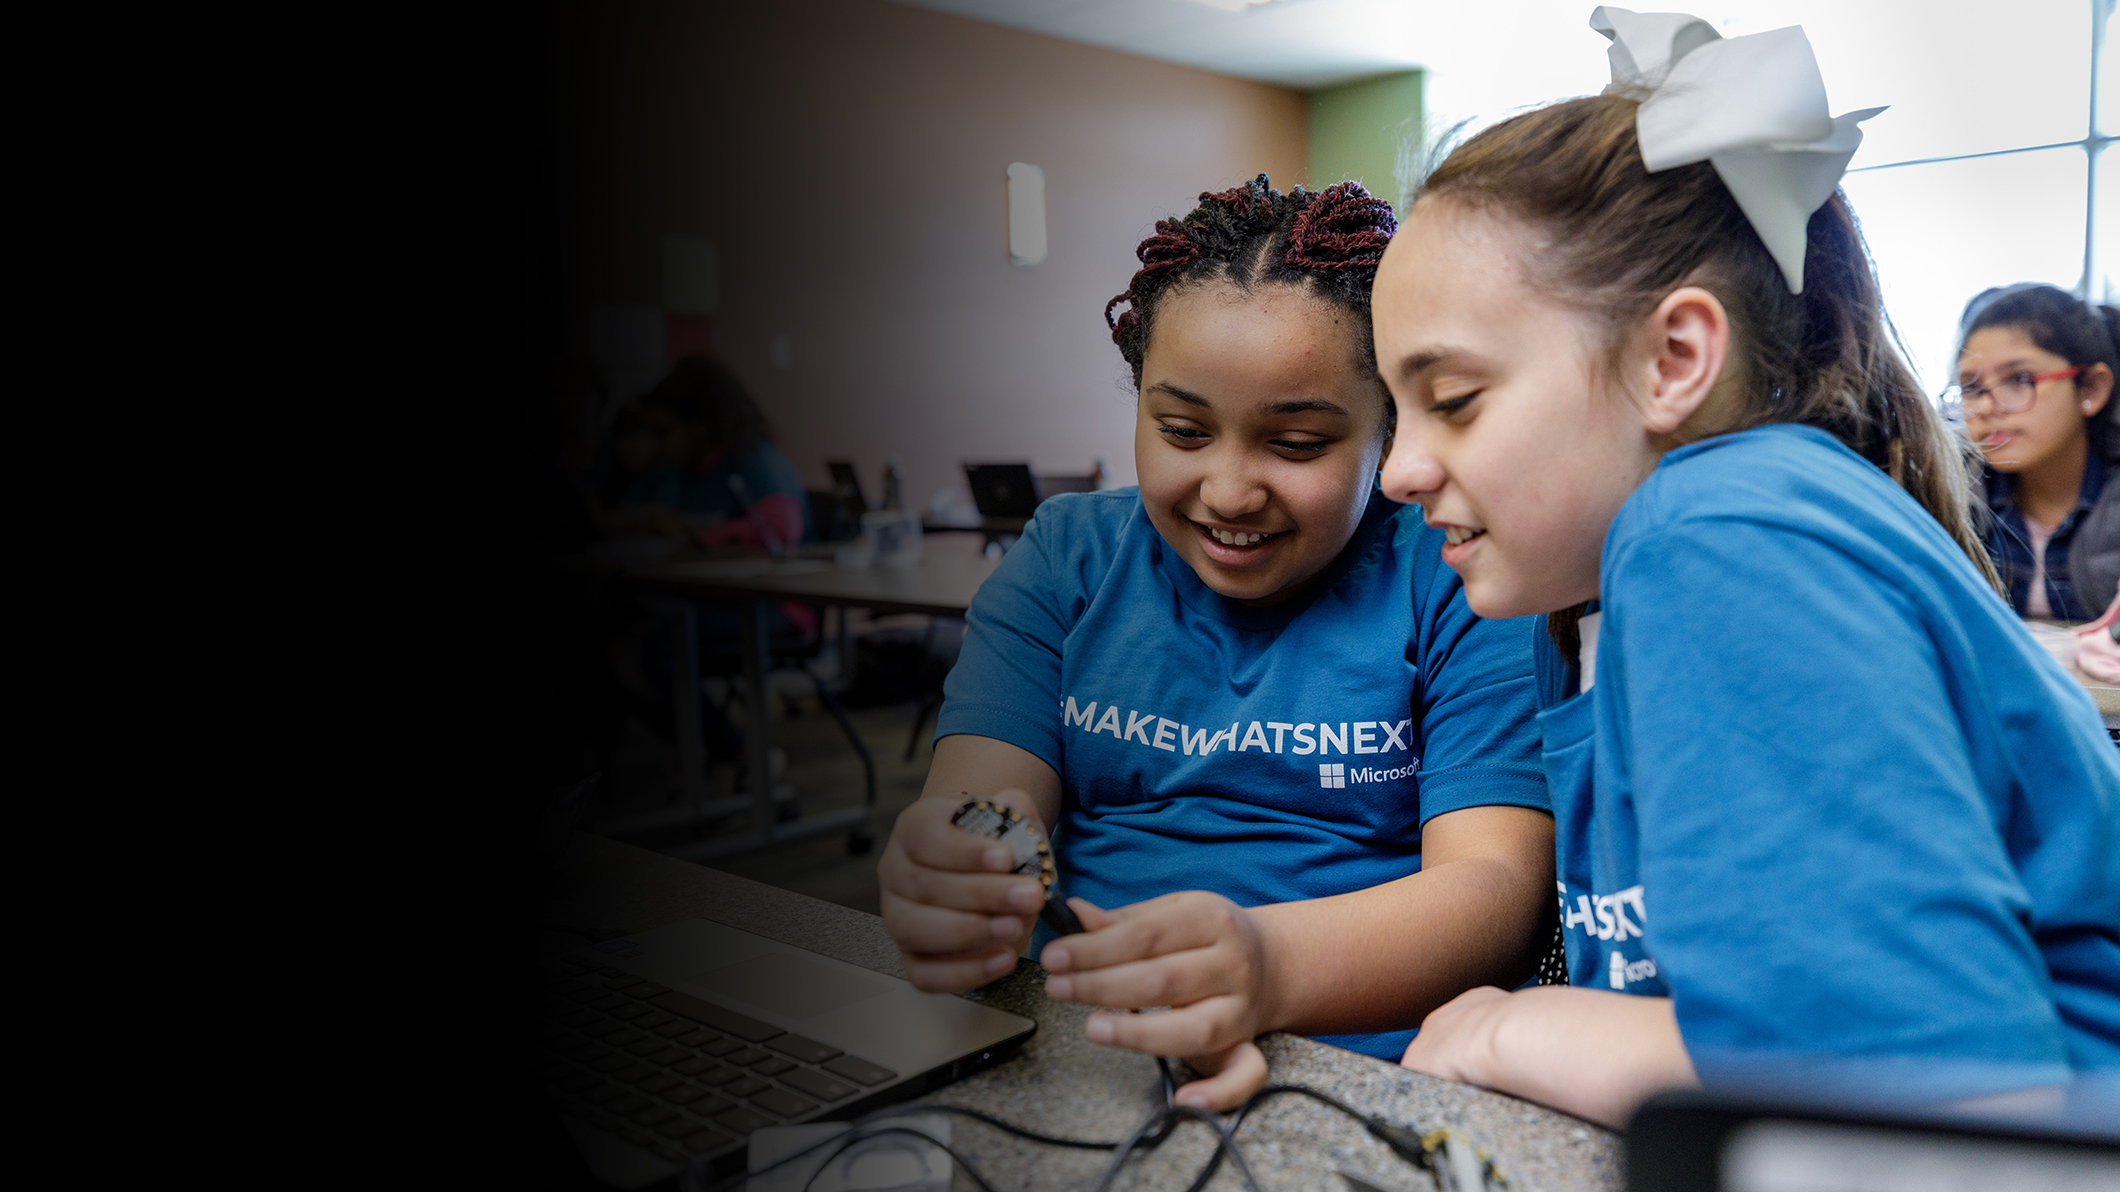 Two young girls work on a project with a computer chip.